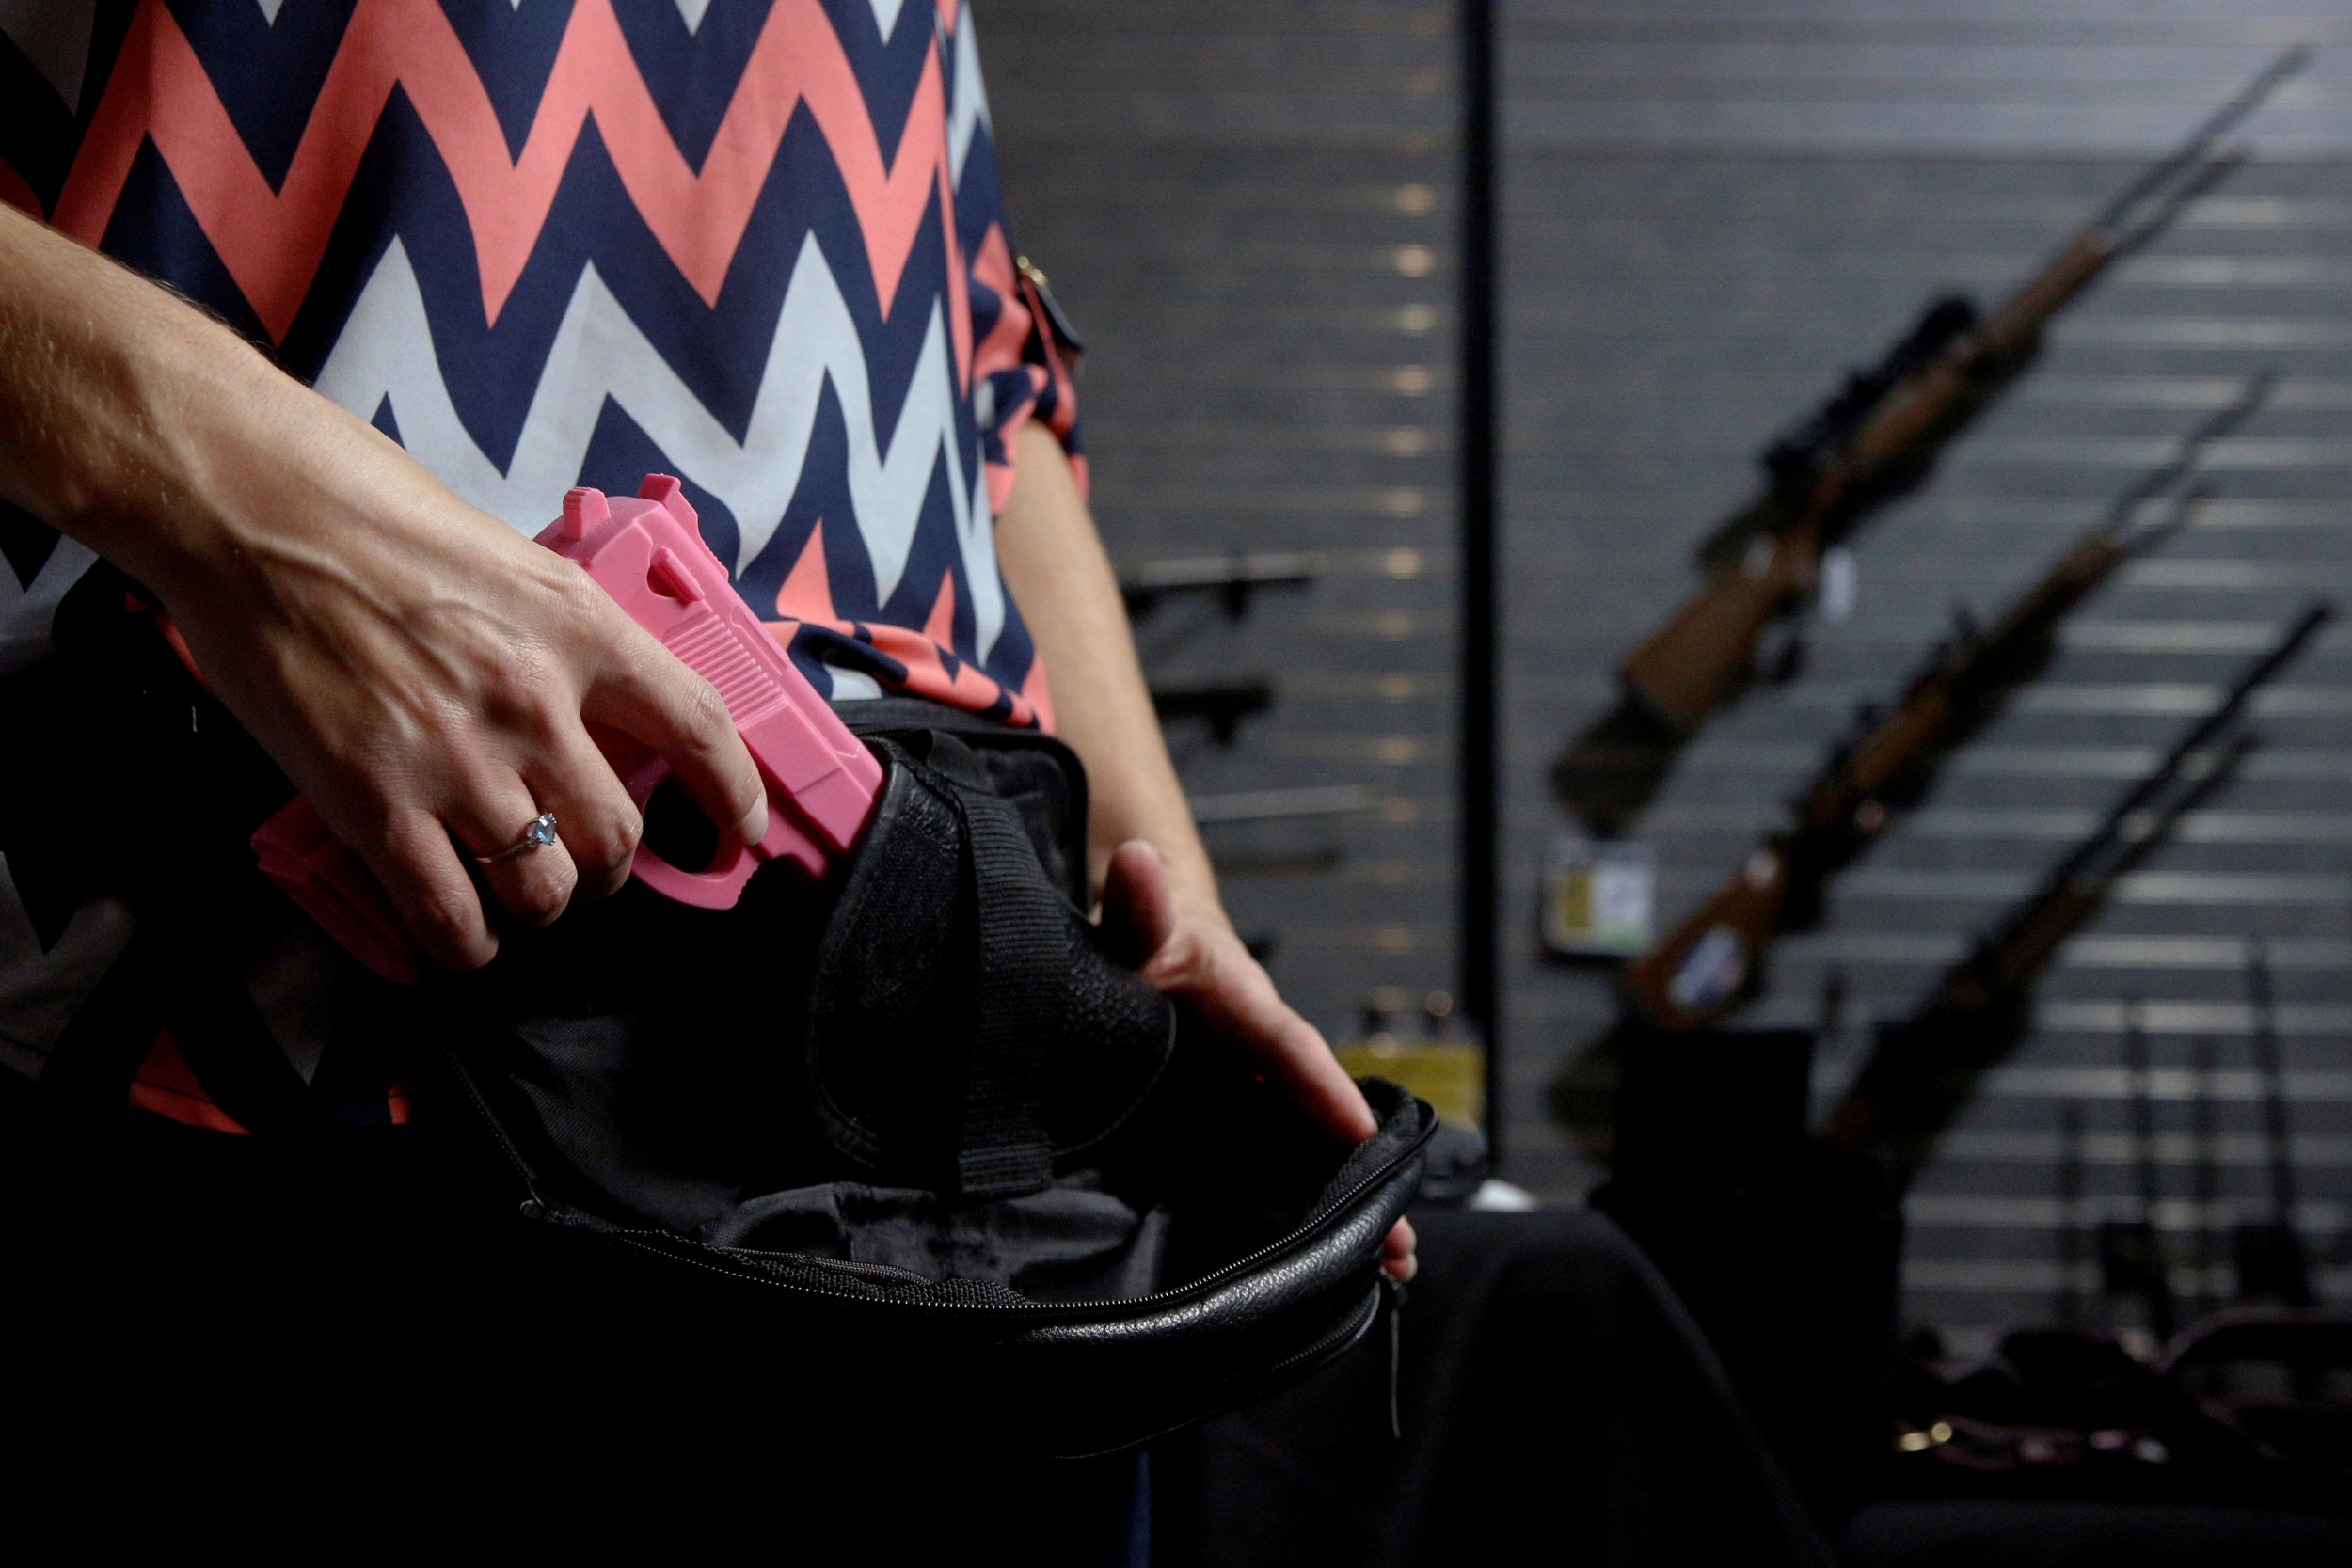 0419_national_concealed_carry_reciprocity_01